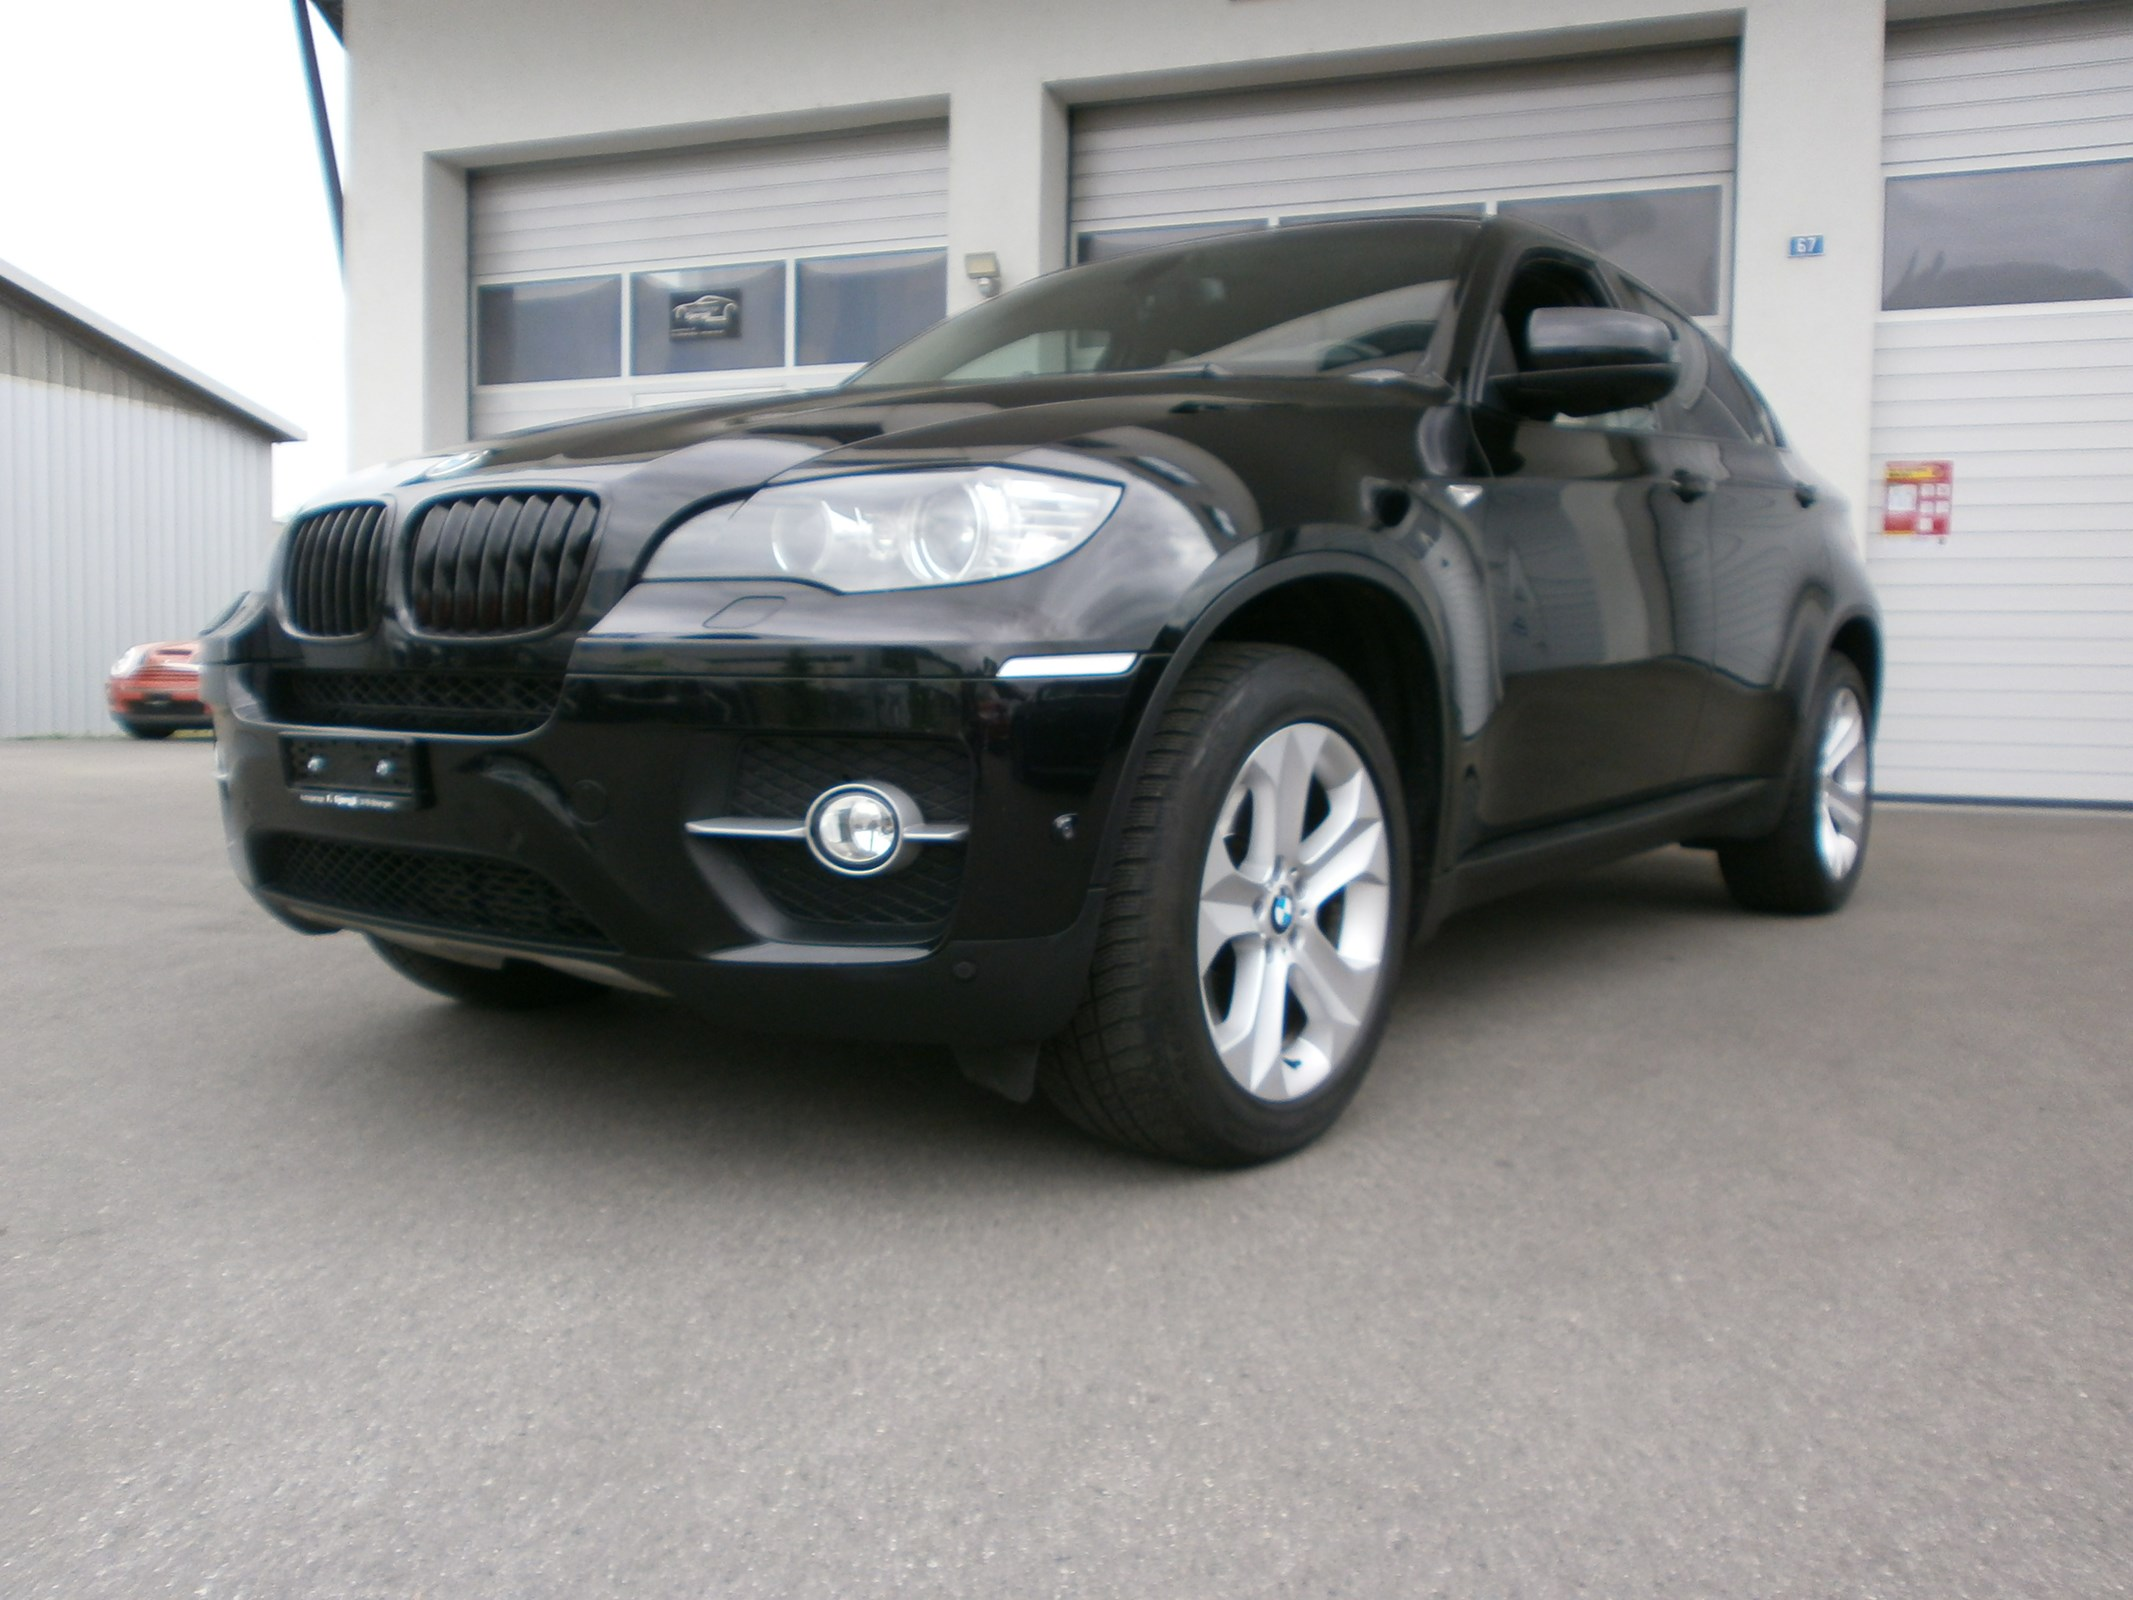 Buy Suv Bmw X6 Xdrive 40d Steptronic On Carforyou Ch